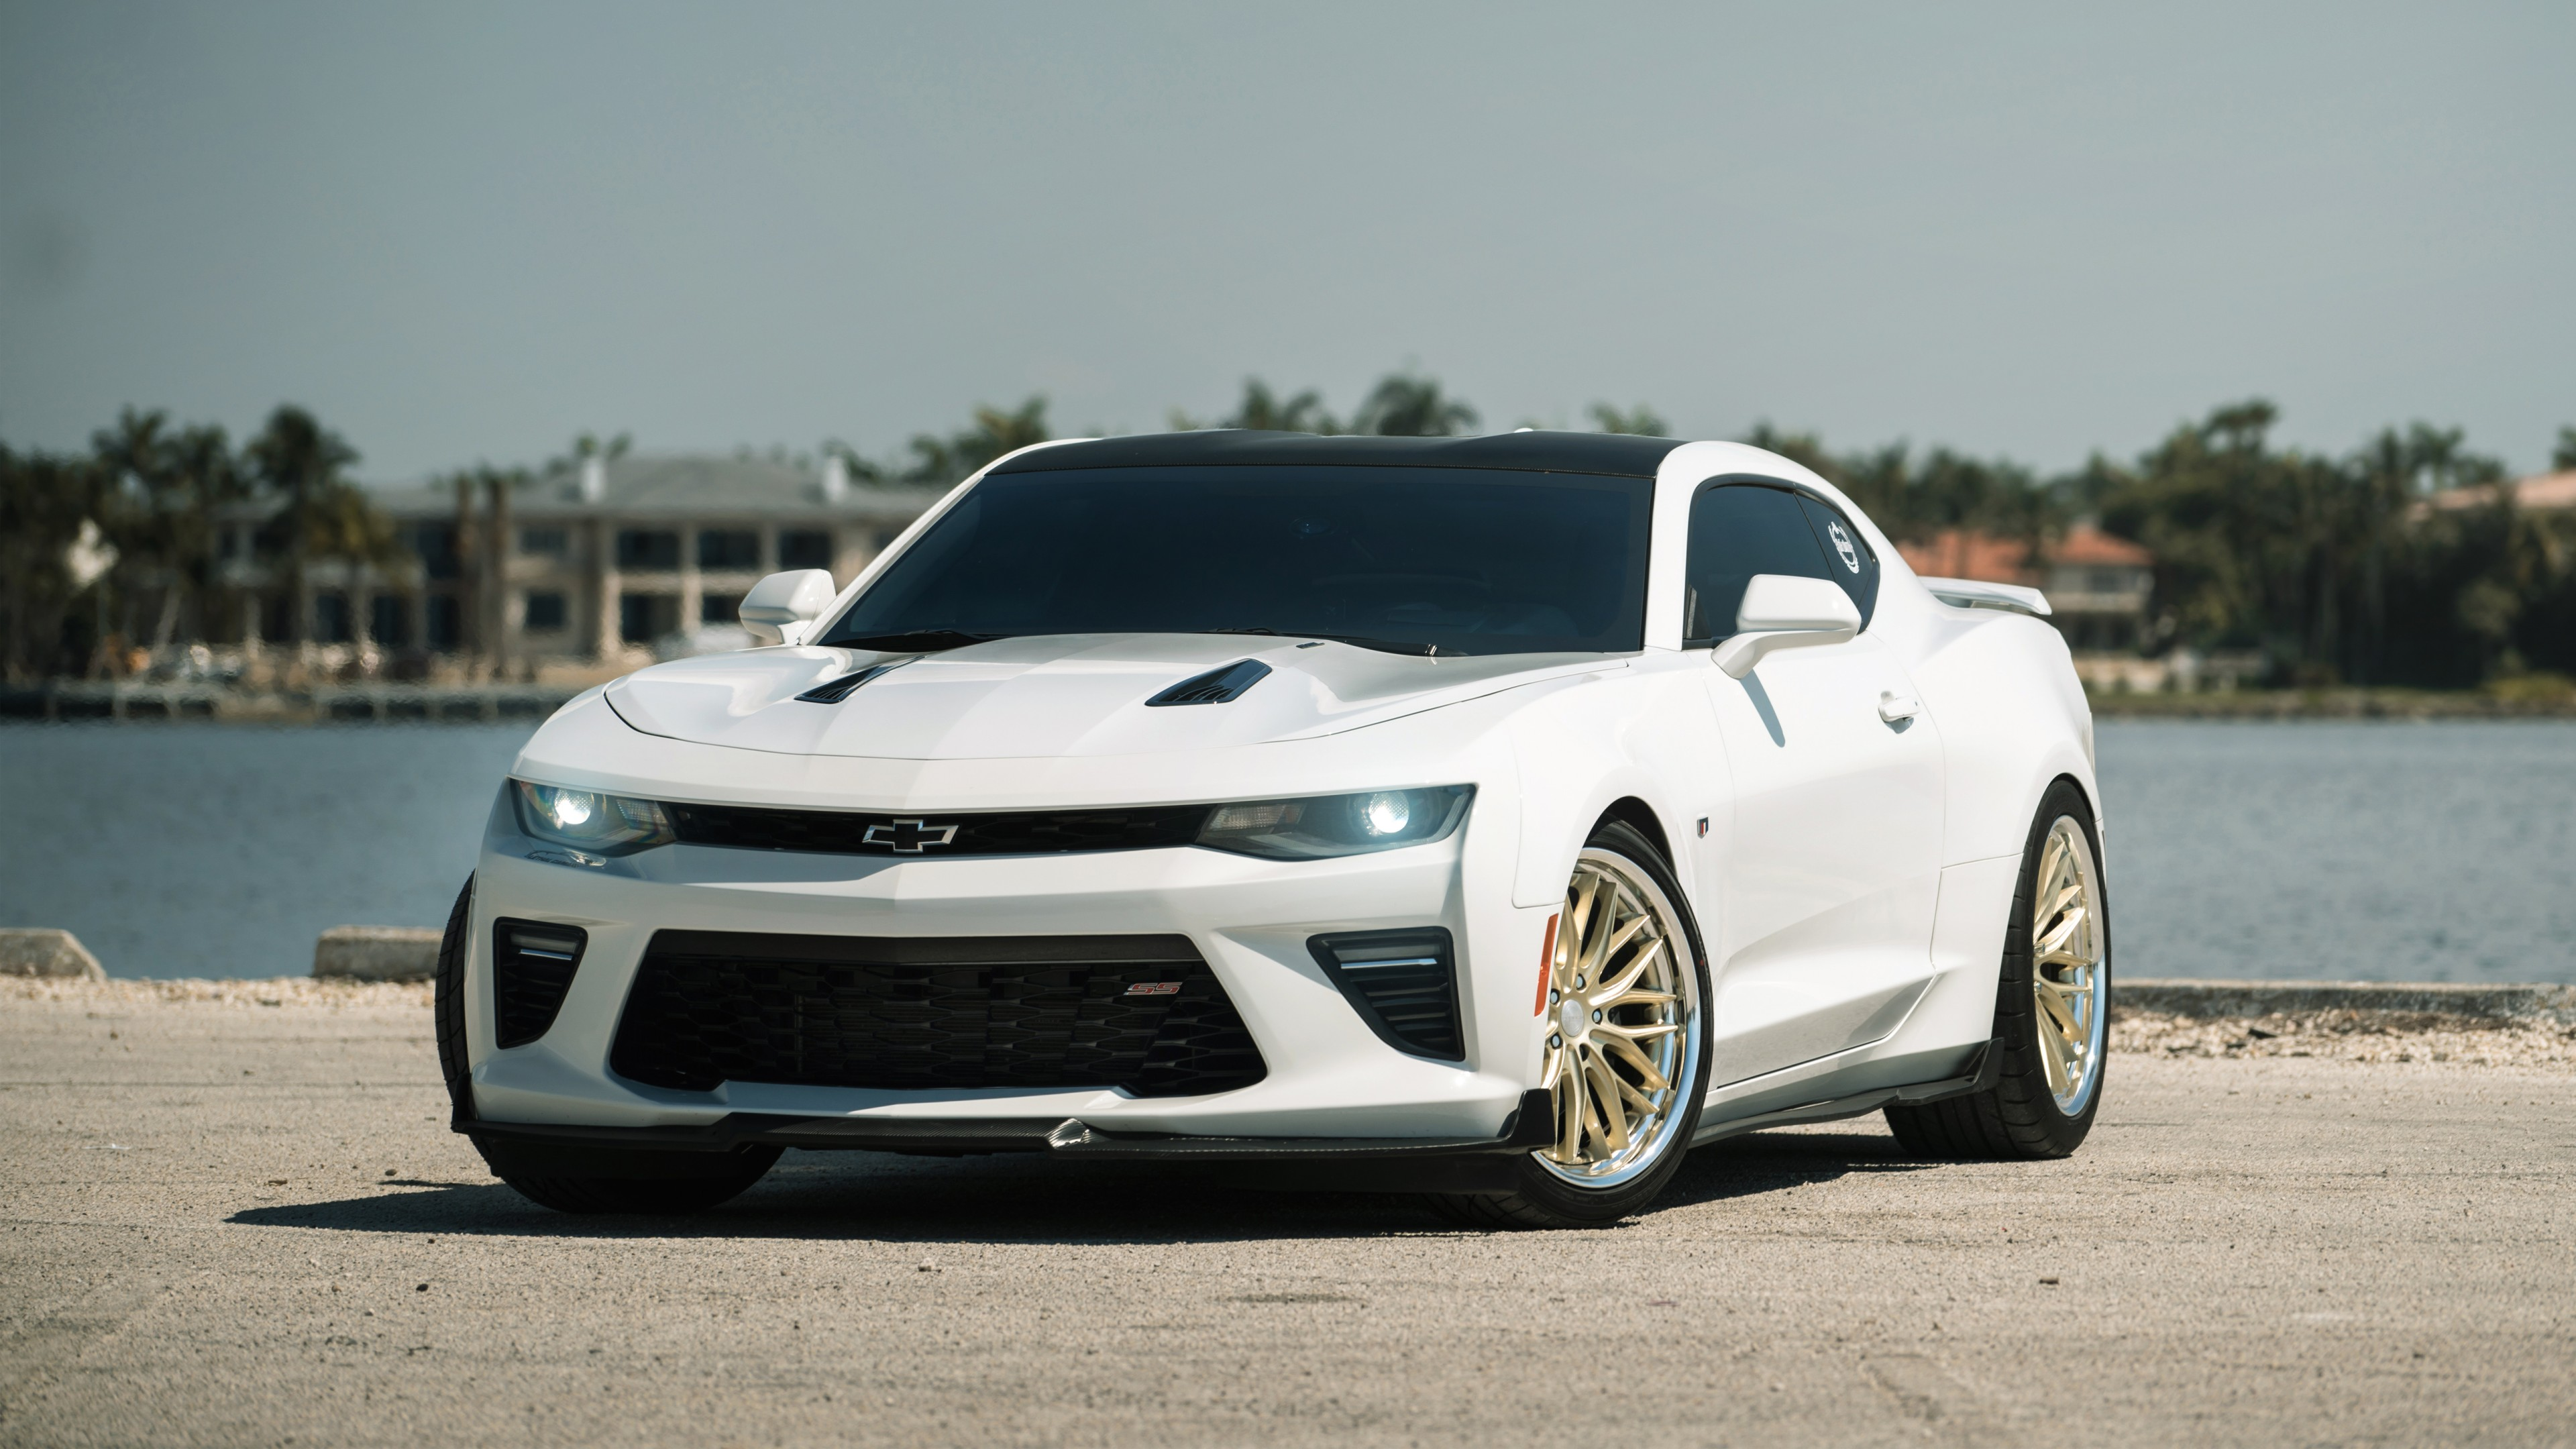 Chevrolet Camaro SS 5K Wallpaper  HD Car Wallpapers  ID 8200